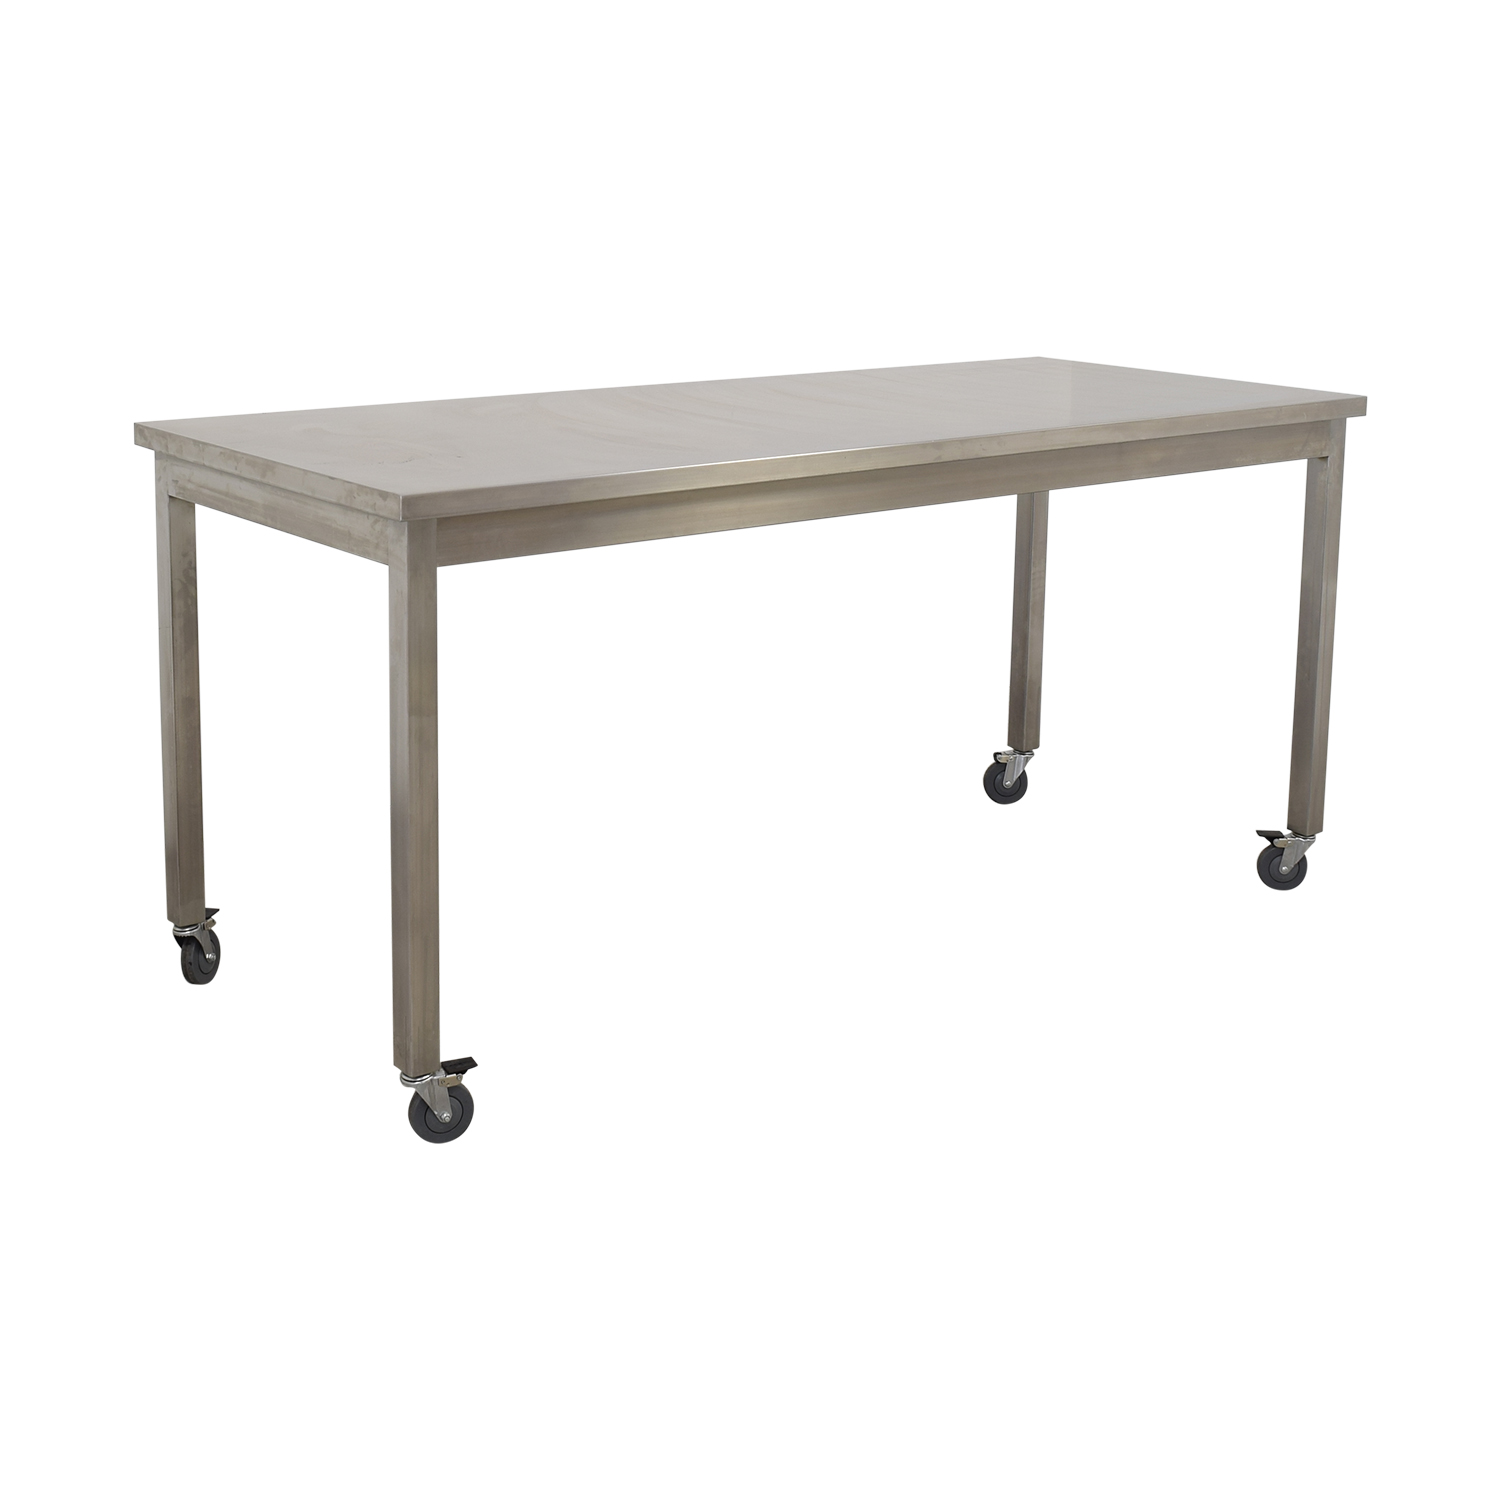 Bowery Kitchen Bowery Kitchen Stainless Steel High Top Table for sale